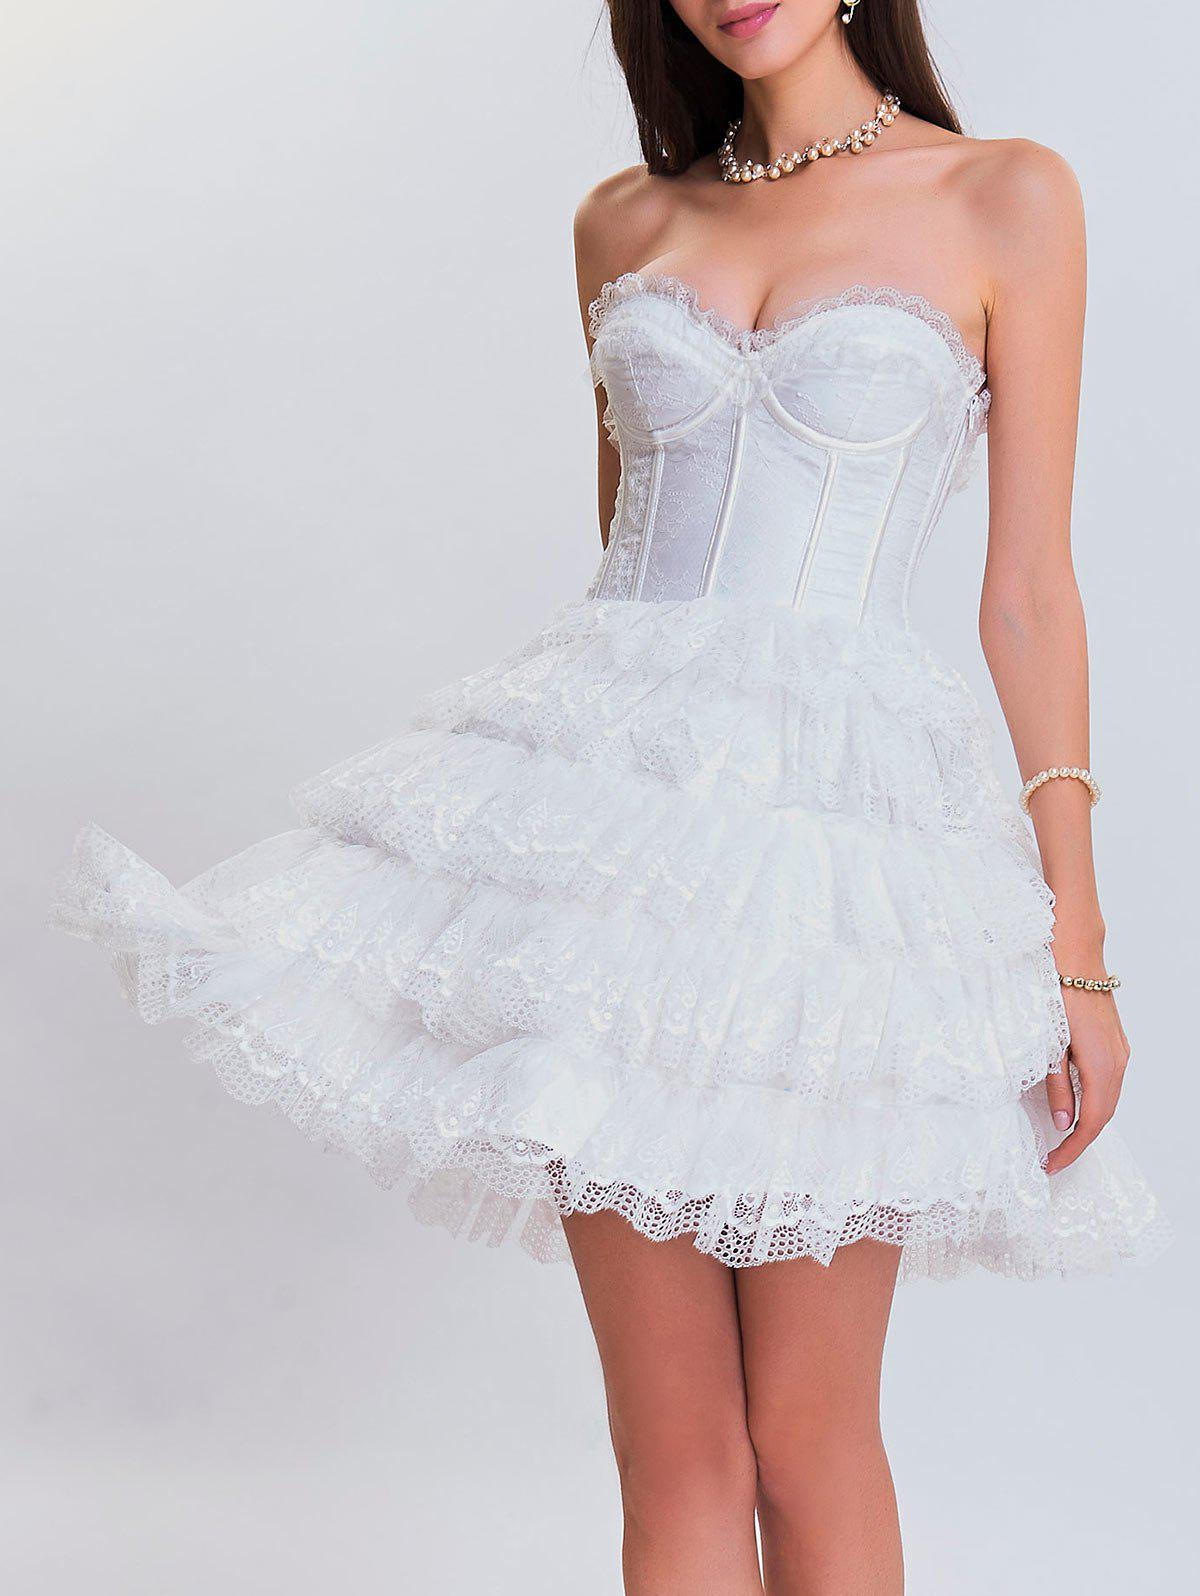 Trendy Club Eyelet Tiered Lace Corset Dress